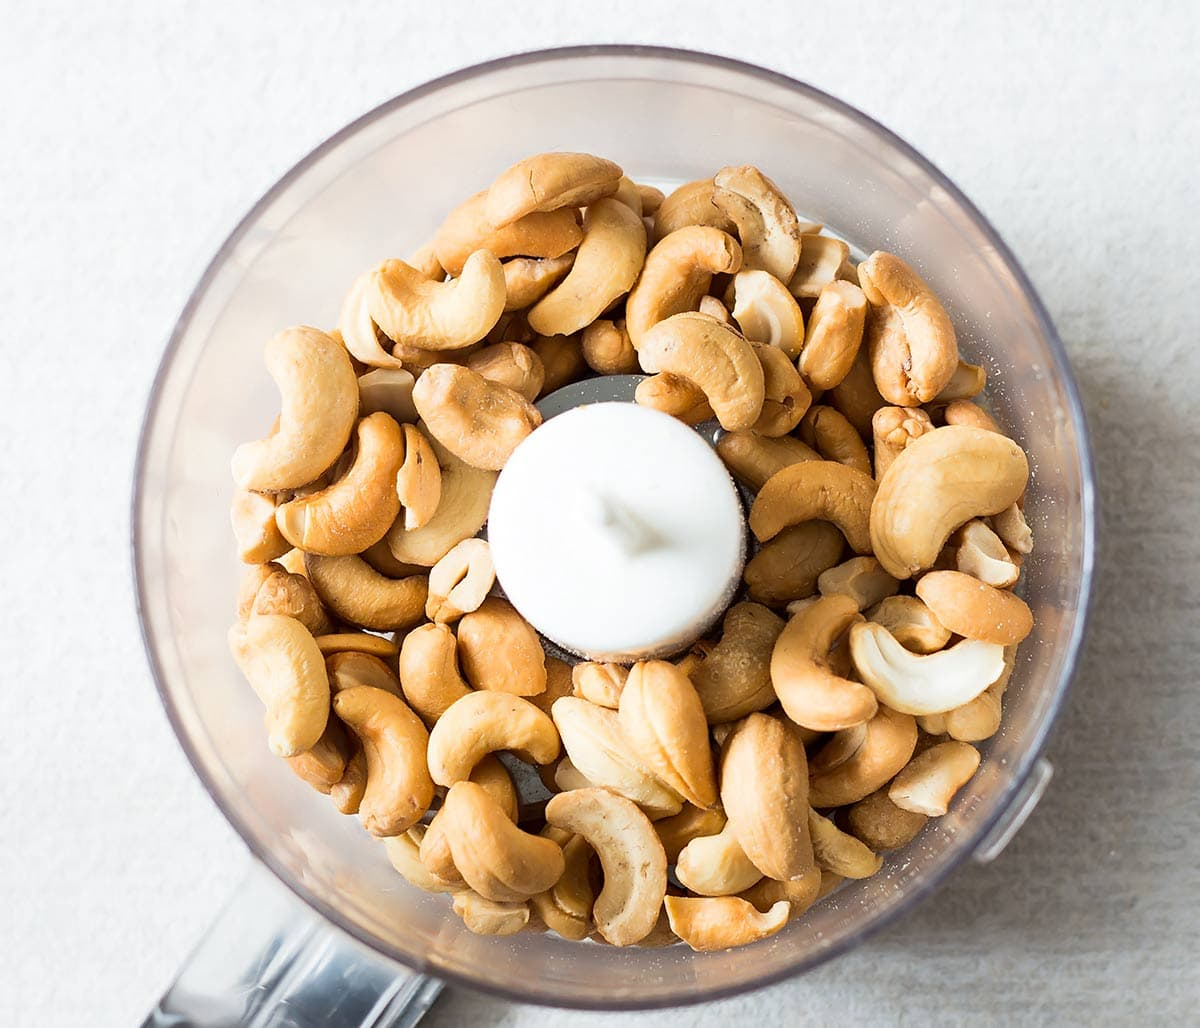 Roasted cashews in food processor for cashew nut butter